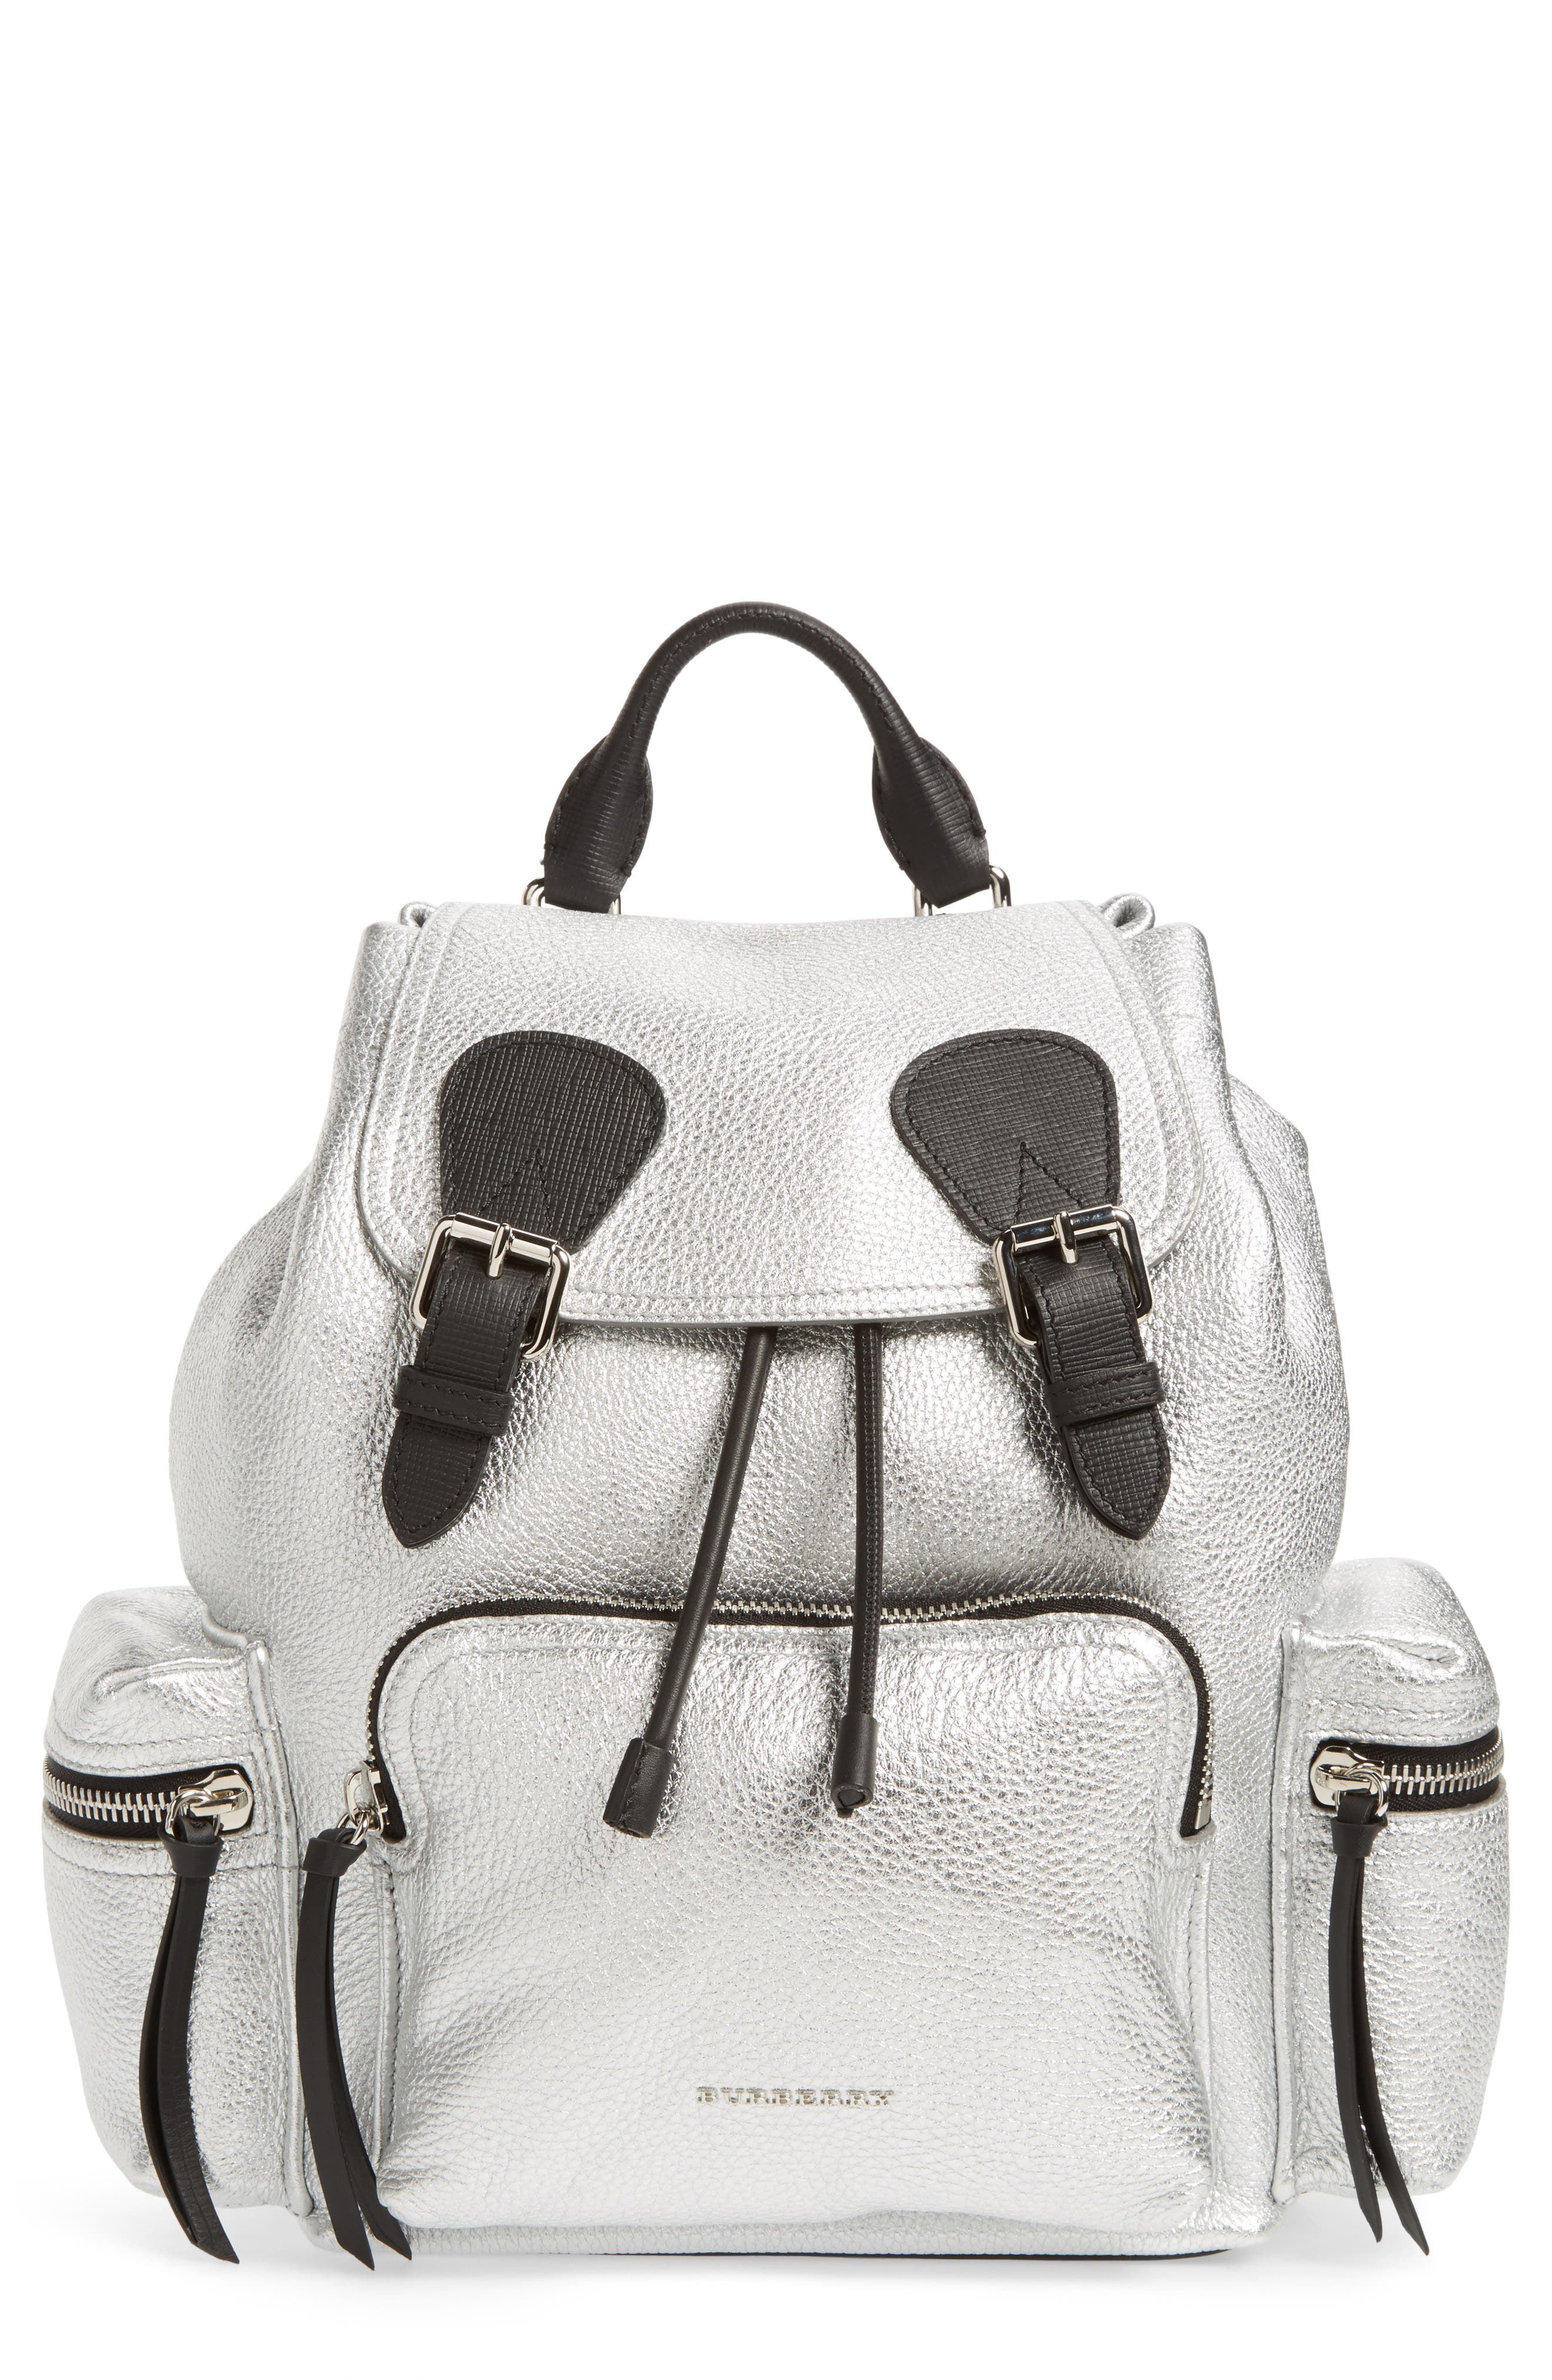 Medium Rucksack Metallic Leather Backpack,                         Main,                         color, 040